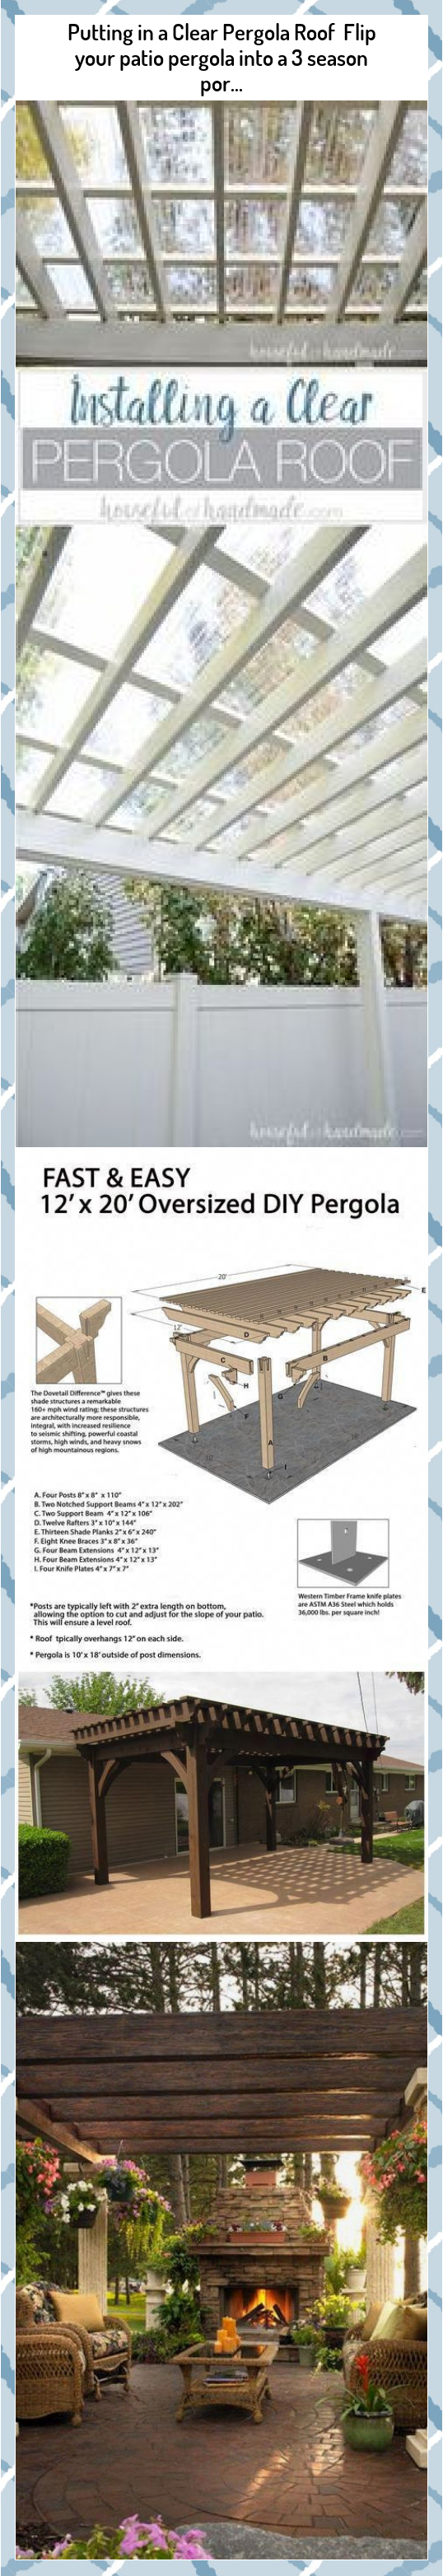 Putting in a Clear Pergola Roof Flip your patio pergola into a 3 season por